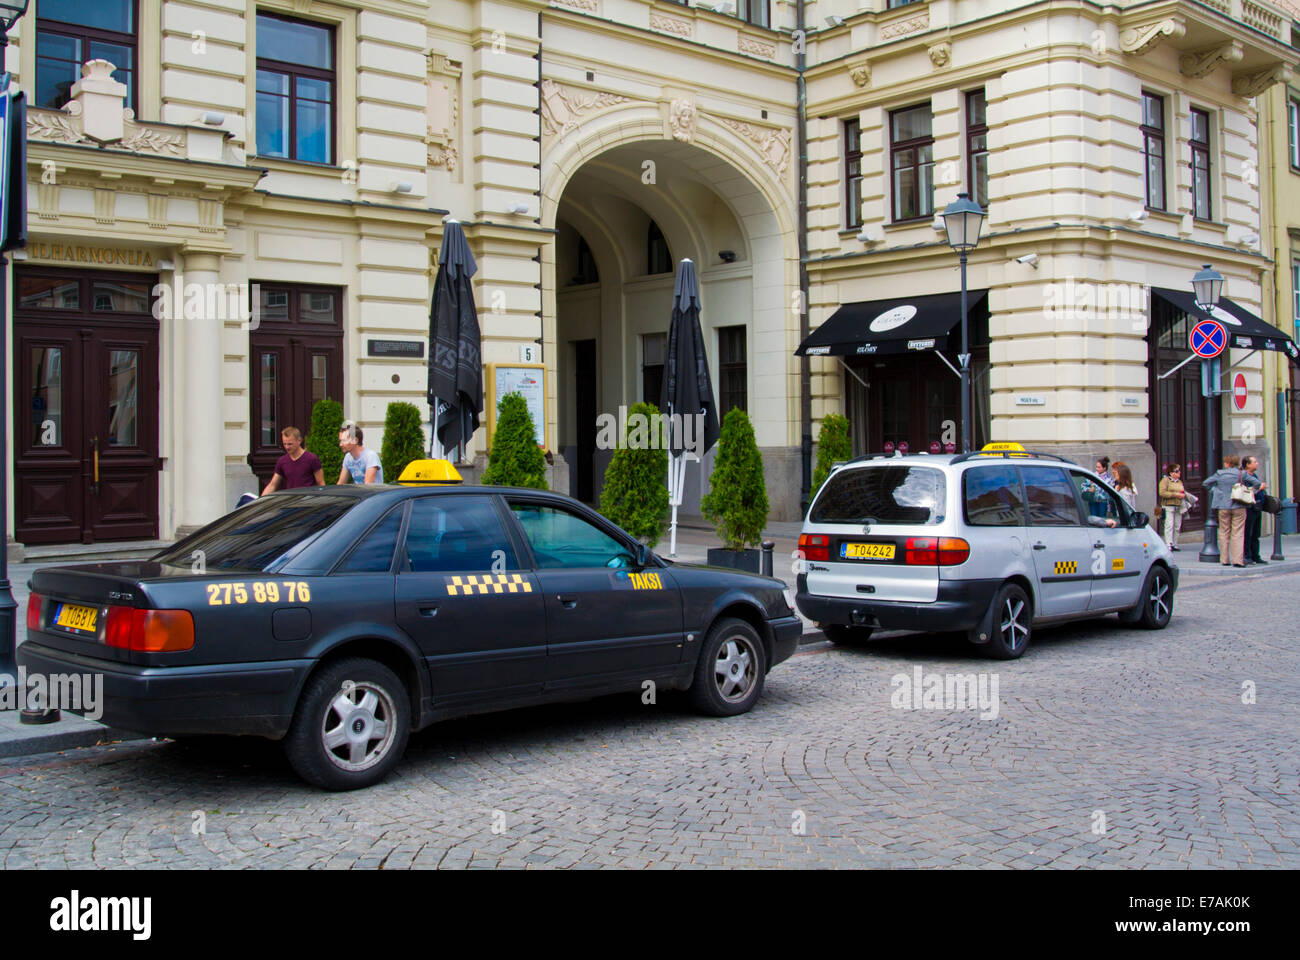 Taxis, old town, Vilnius, Lithuania, Europe Stock Photo